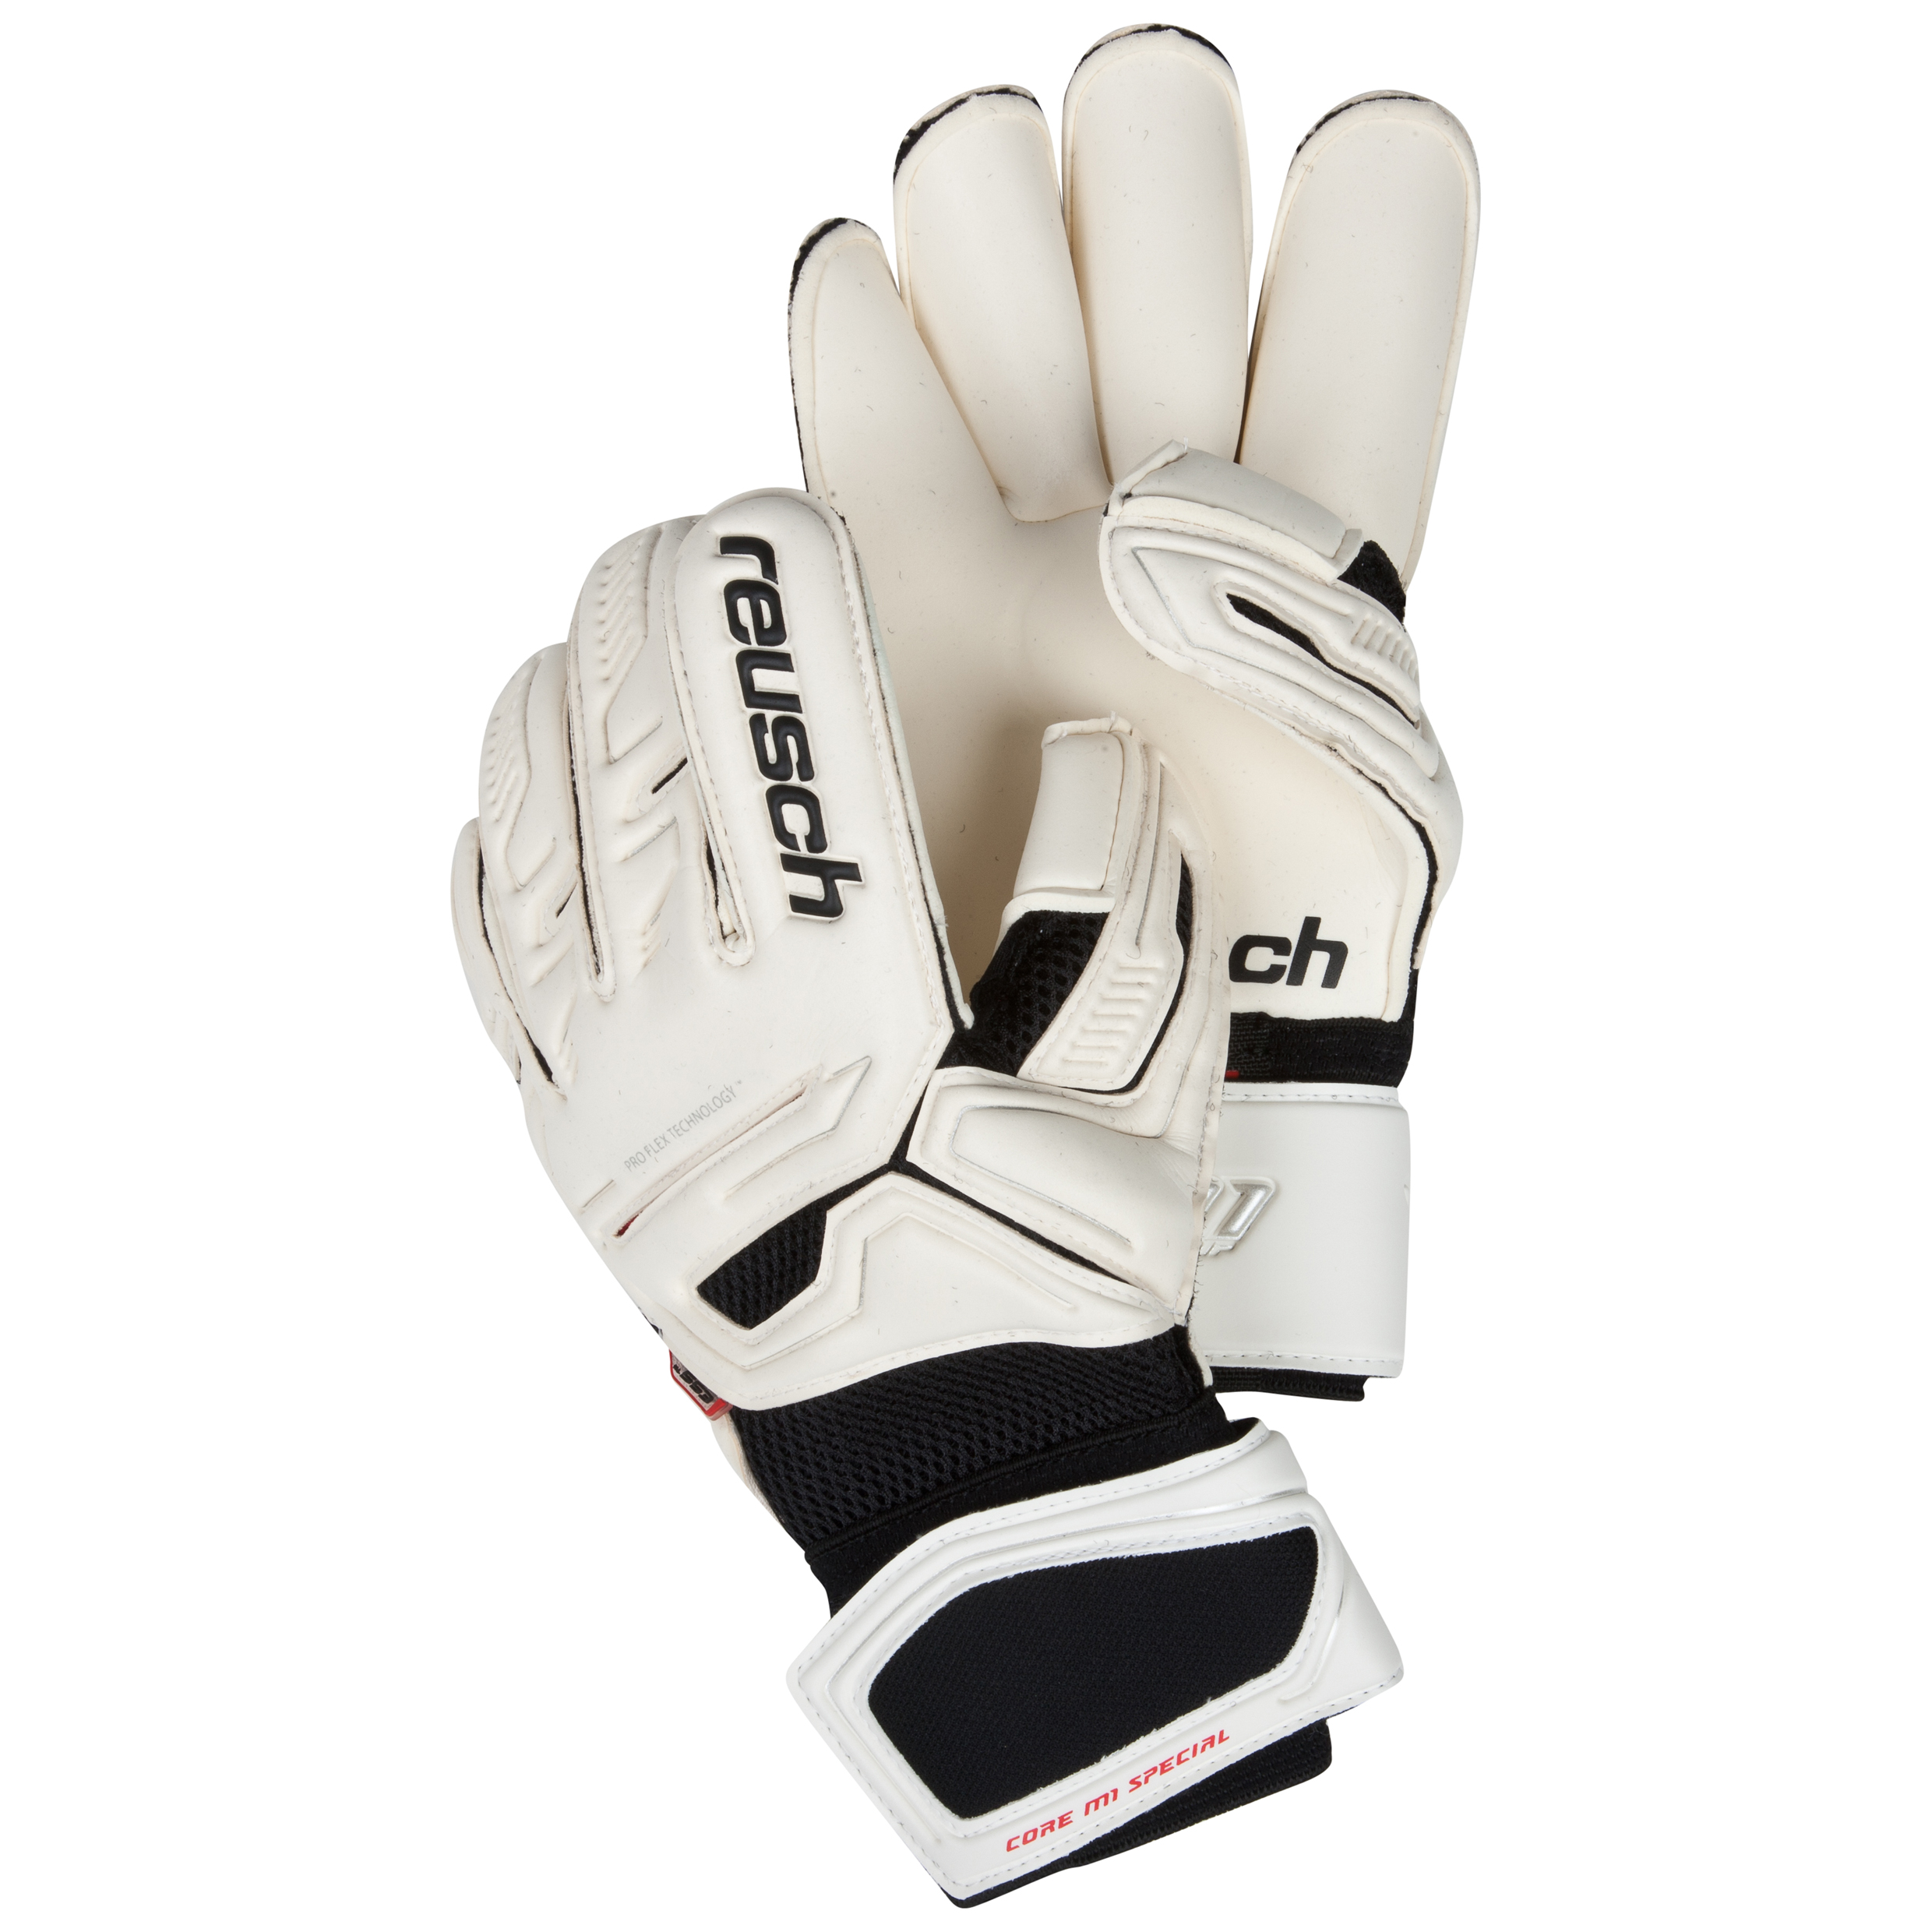 Reusch CF Pro M1 Special Goalkeeper Gloves-White/Fire Red/Lime Green